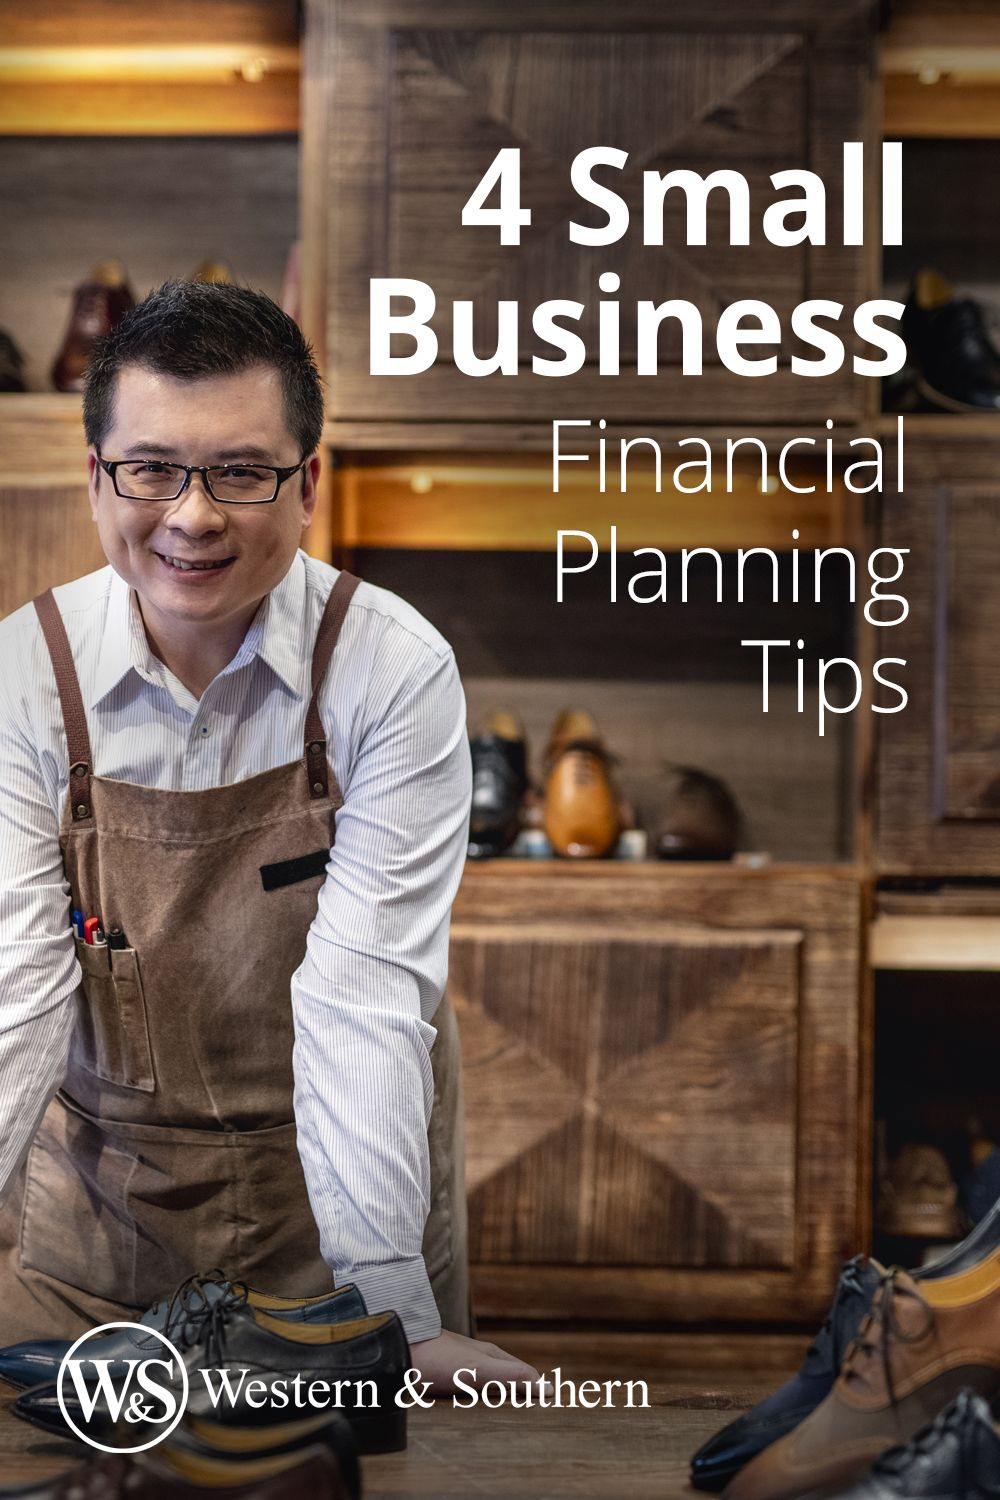 4 Small Business Financial Planning Tips in 2020